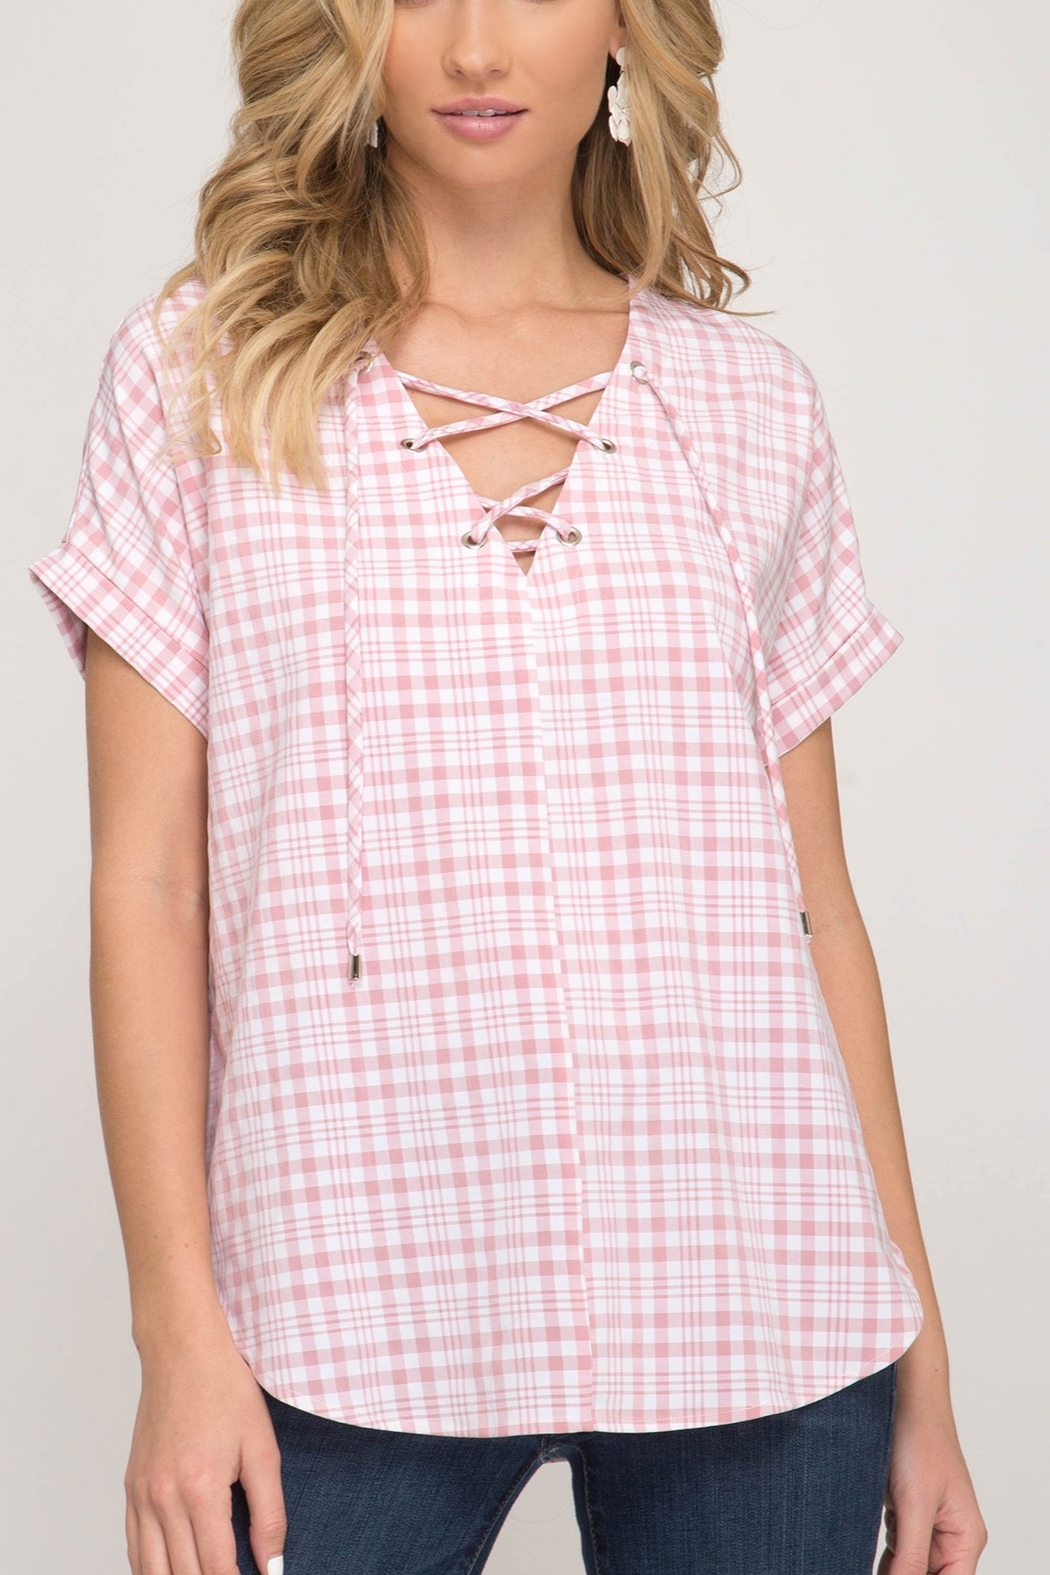 She & Sky  Gingham Lace Up Top - Main Image